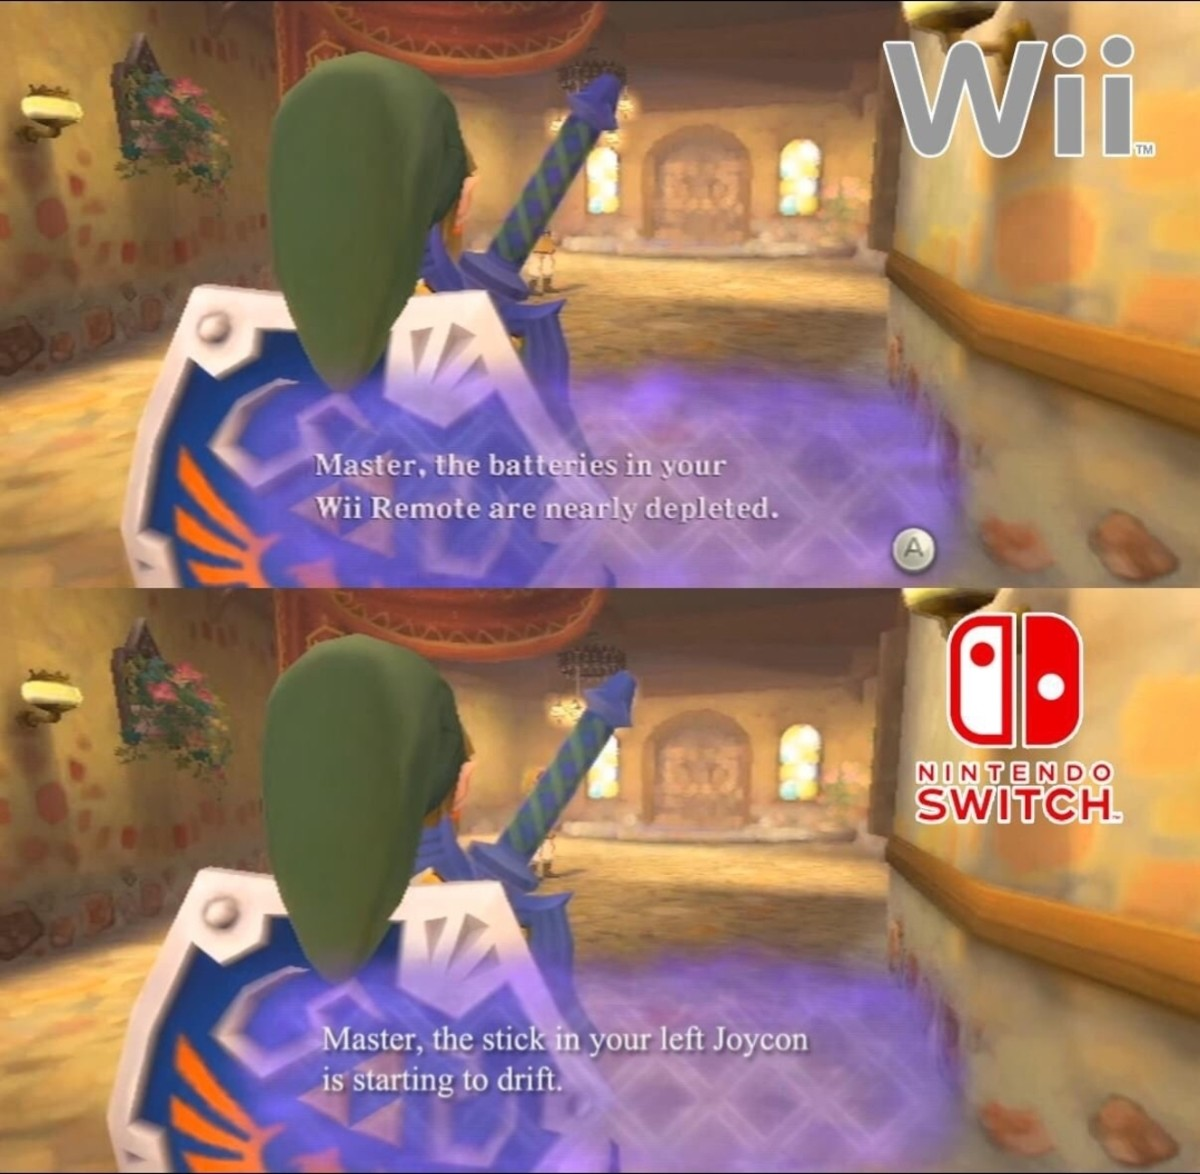 victorious Falcon. .. Nintendo didn't even acknowledge the Drift issues with Joycons.